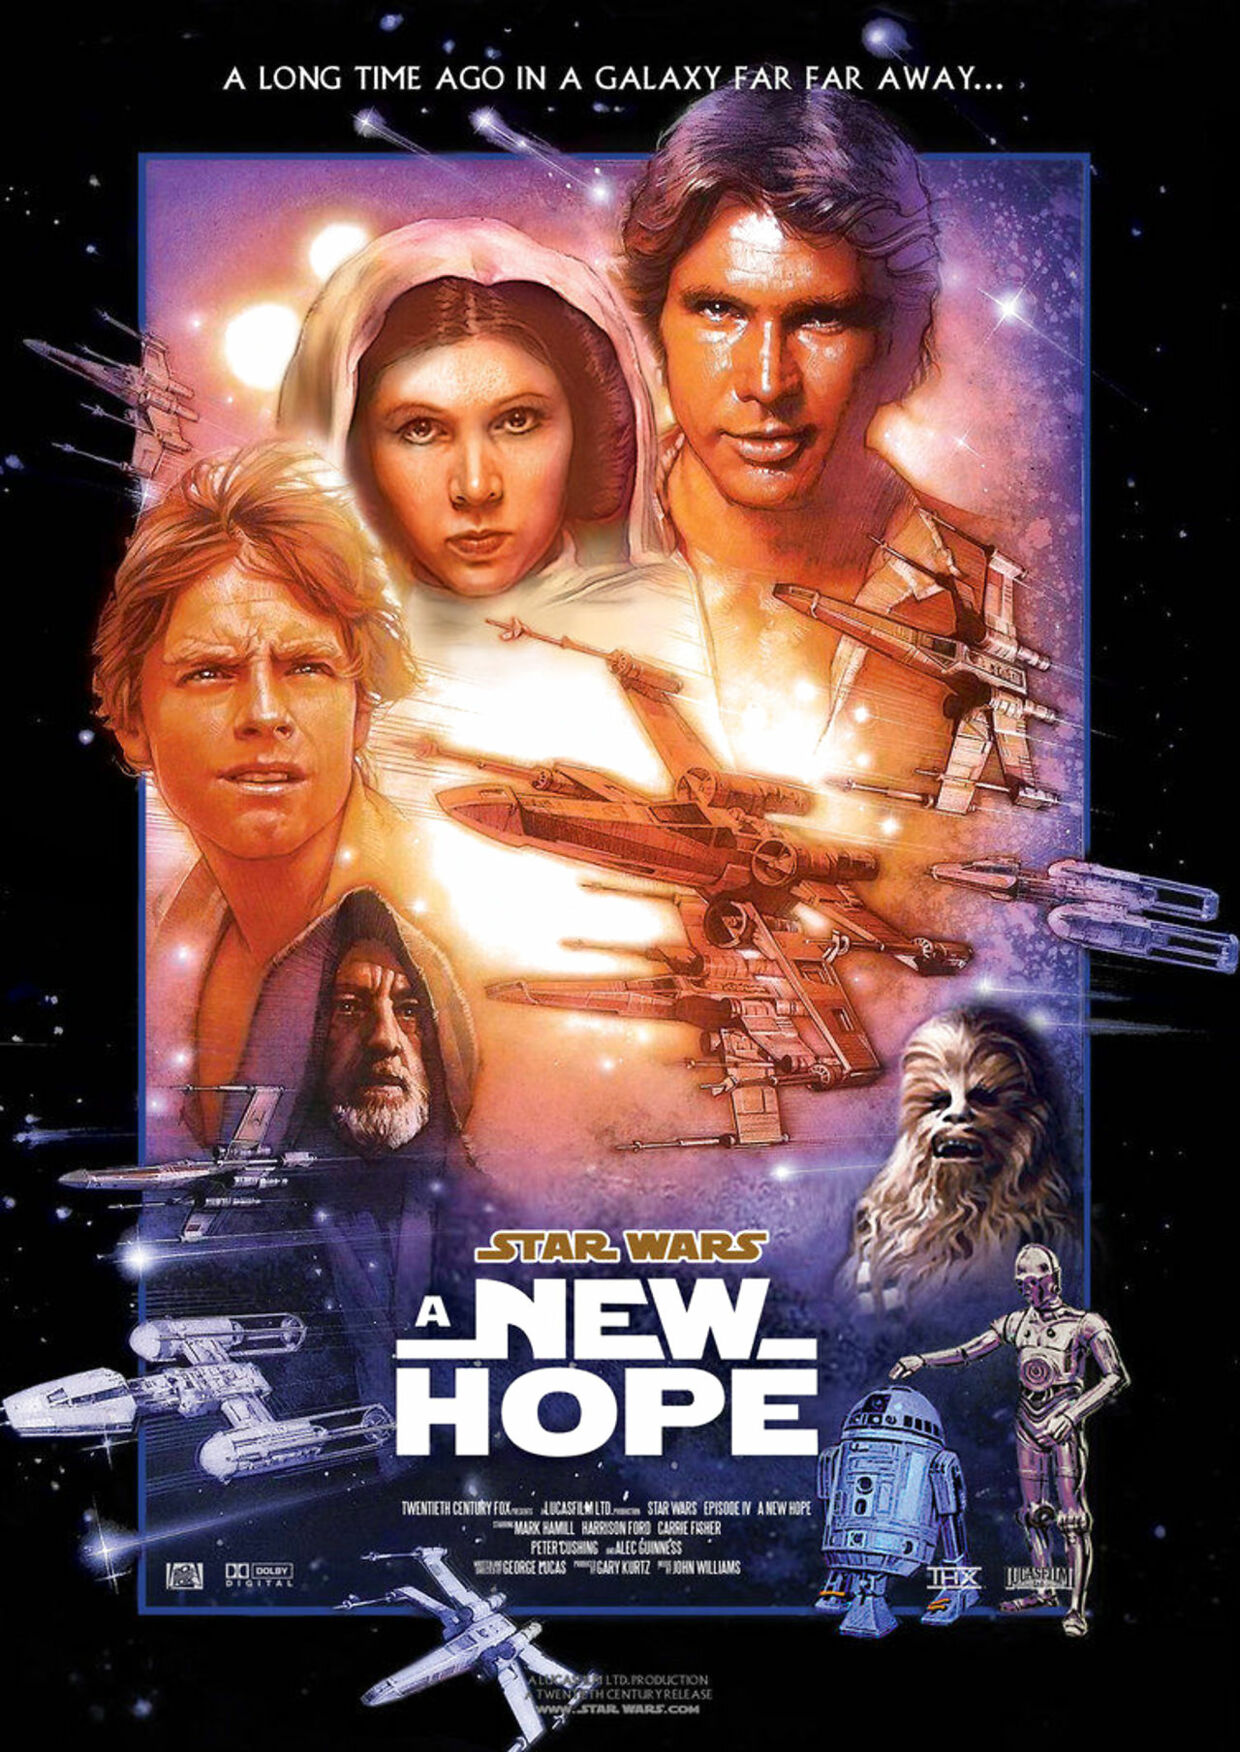 Her ses plakaten fra filmen Star Wars: 'A New Hope'.